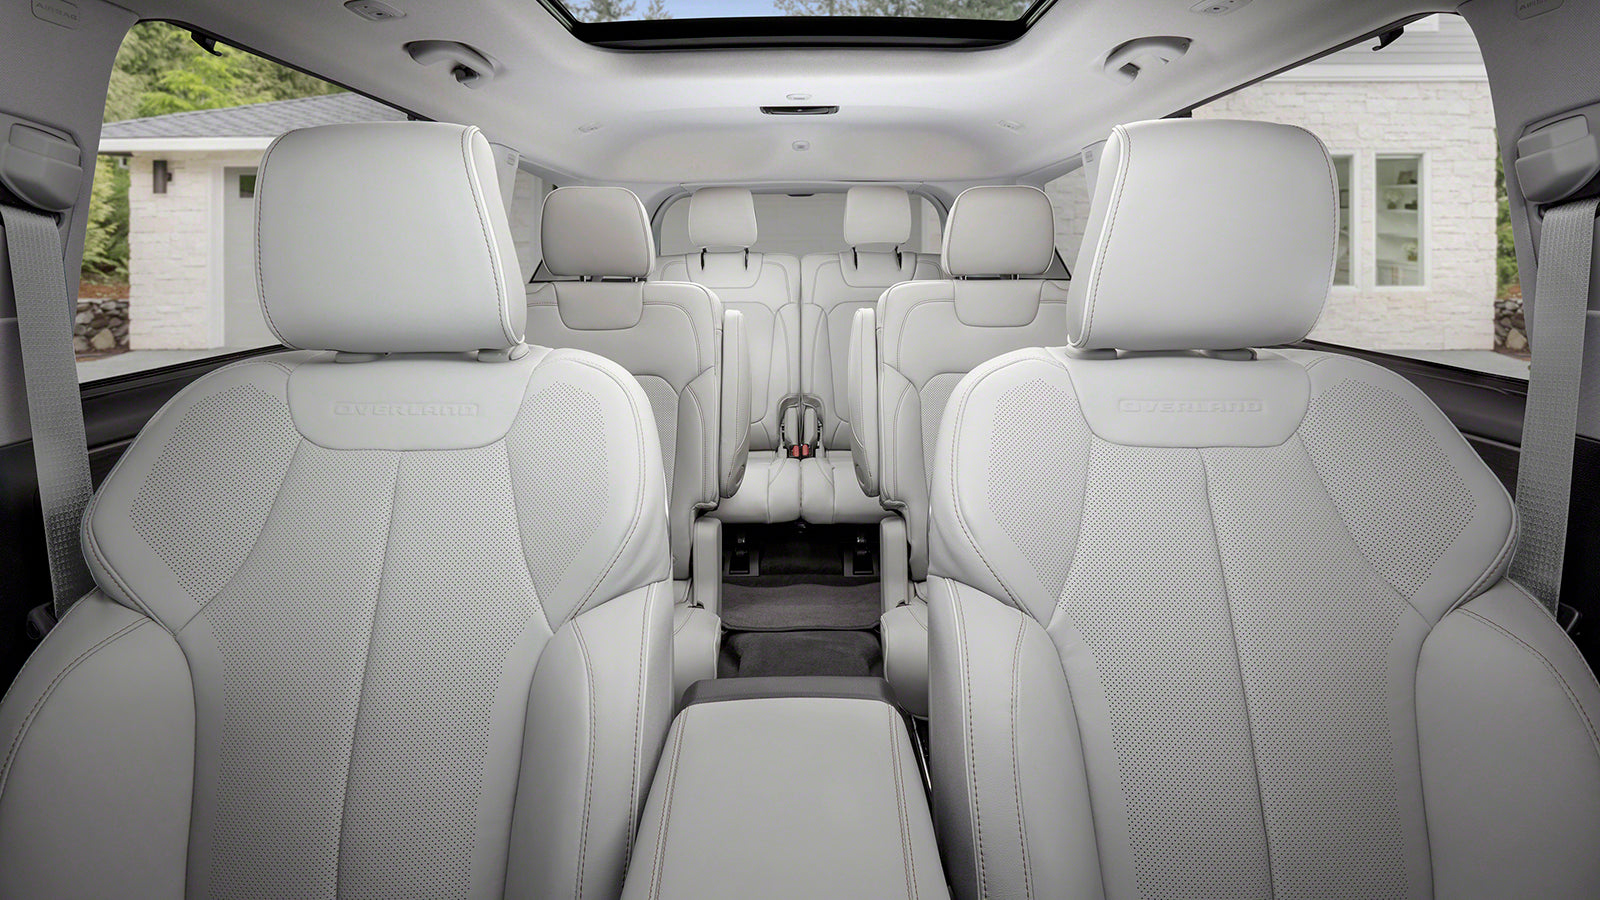 2021 Jeep Grand Cherokee Grand L Interior View with Third Row